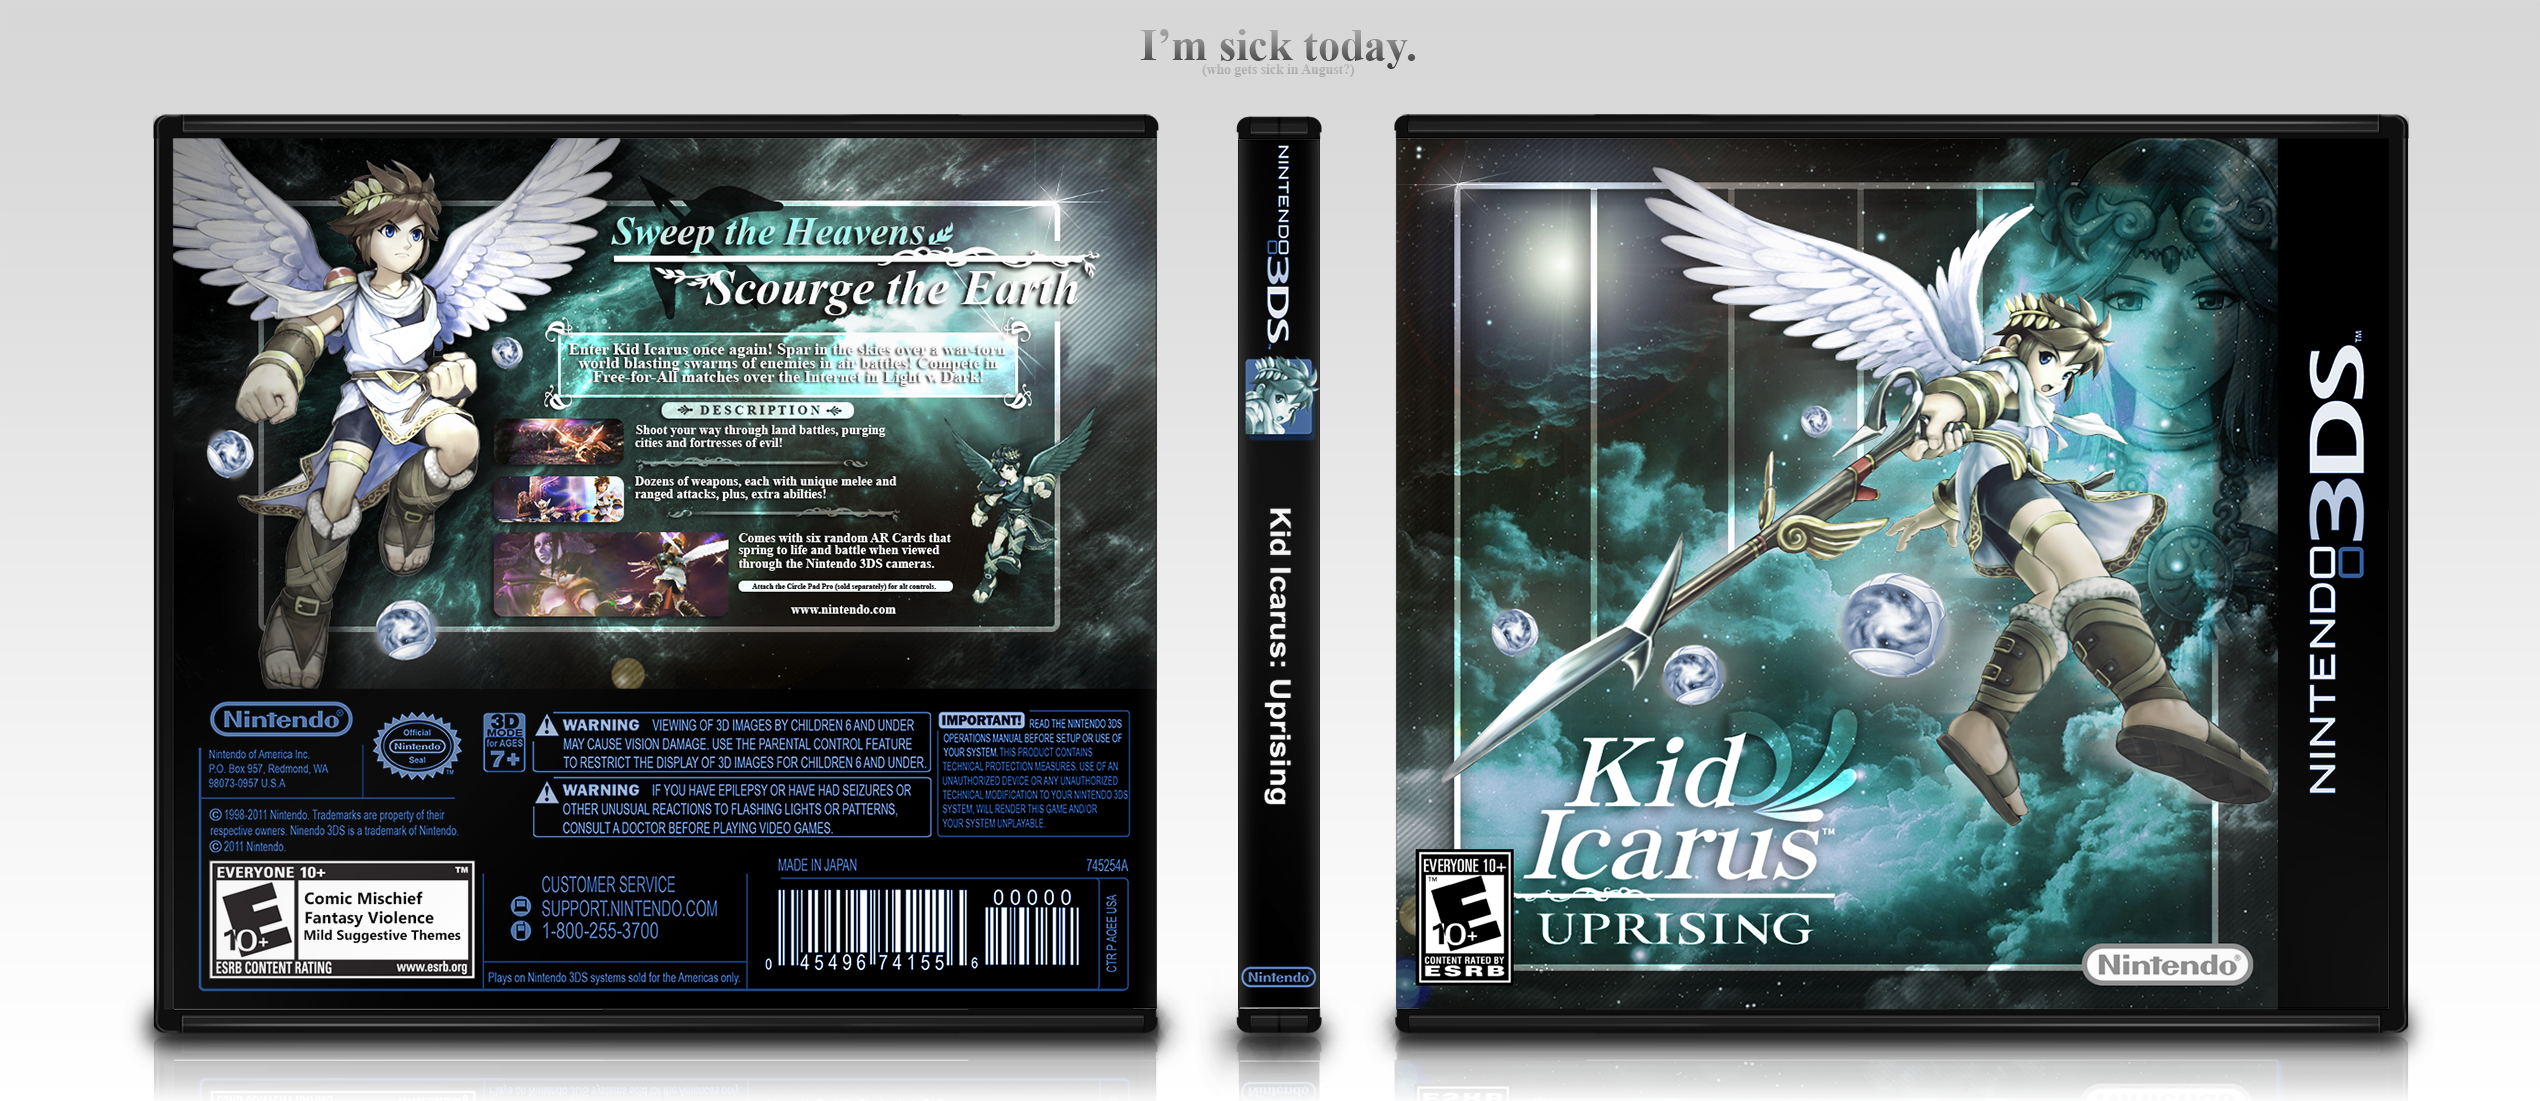 Kid Icarus: Uprising box cover